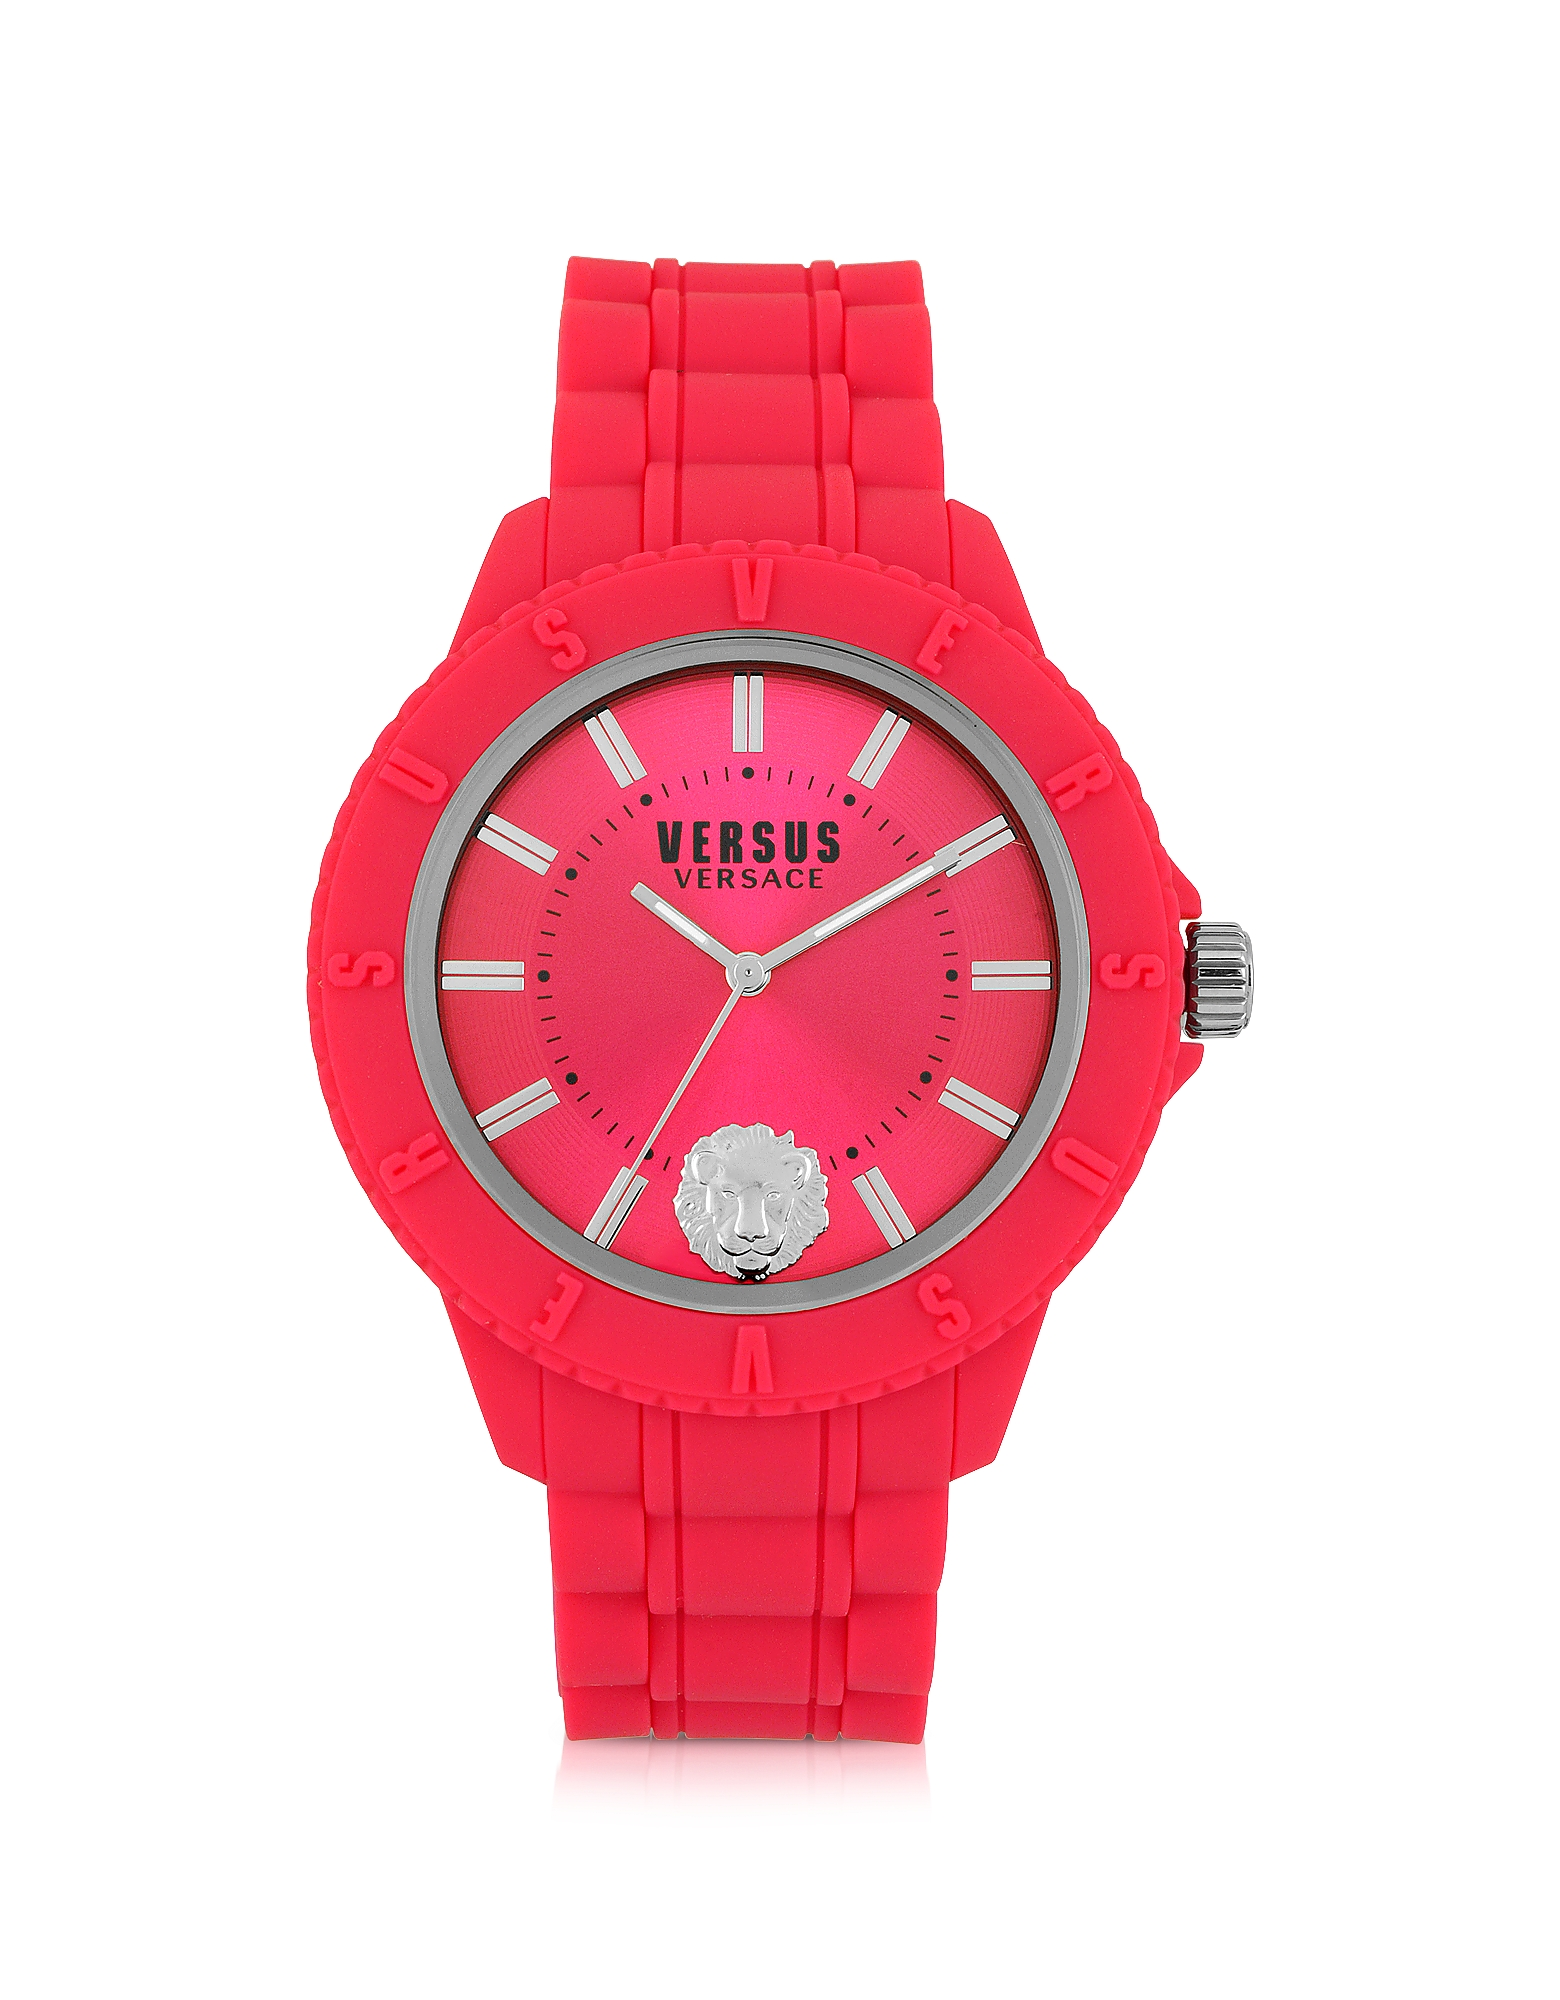 Versace Versus Women's Watches, Tokyo Silicon and Silver Tone Stainless Steel Unisex Watch